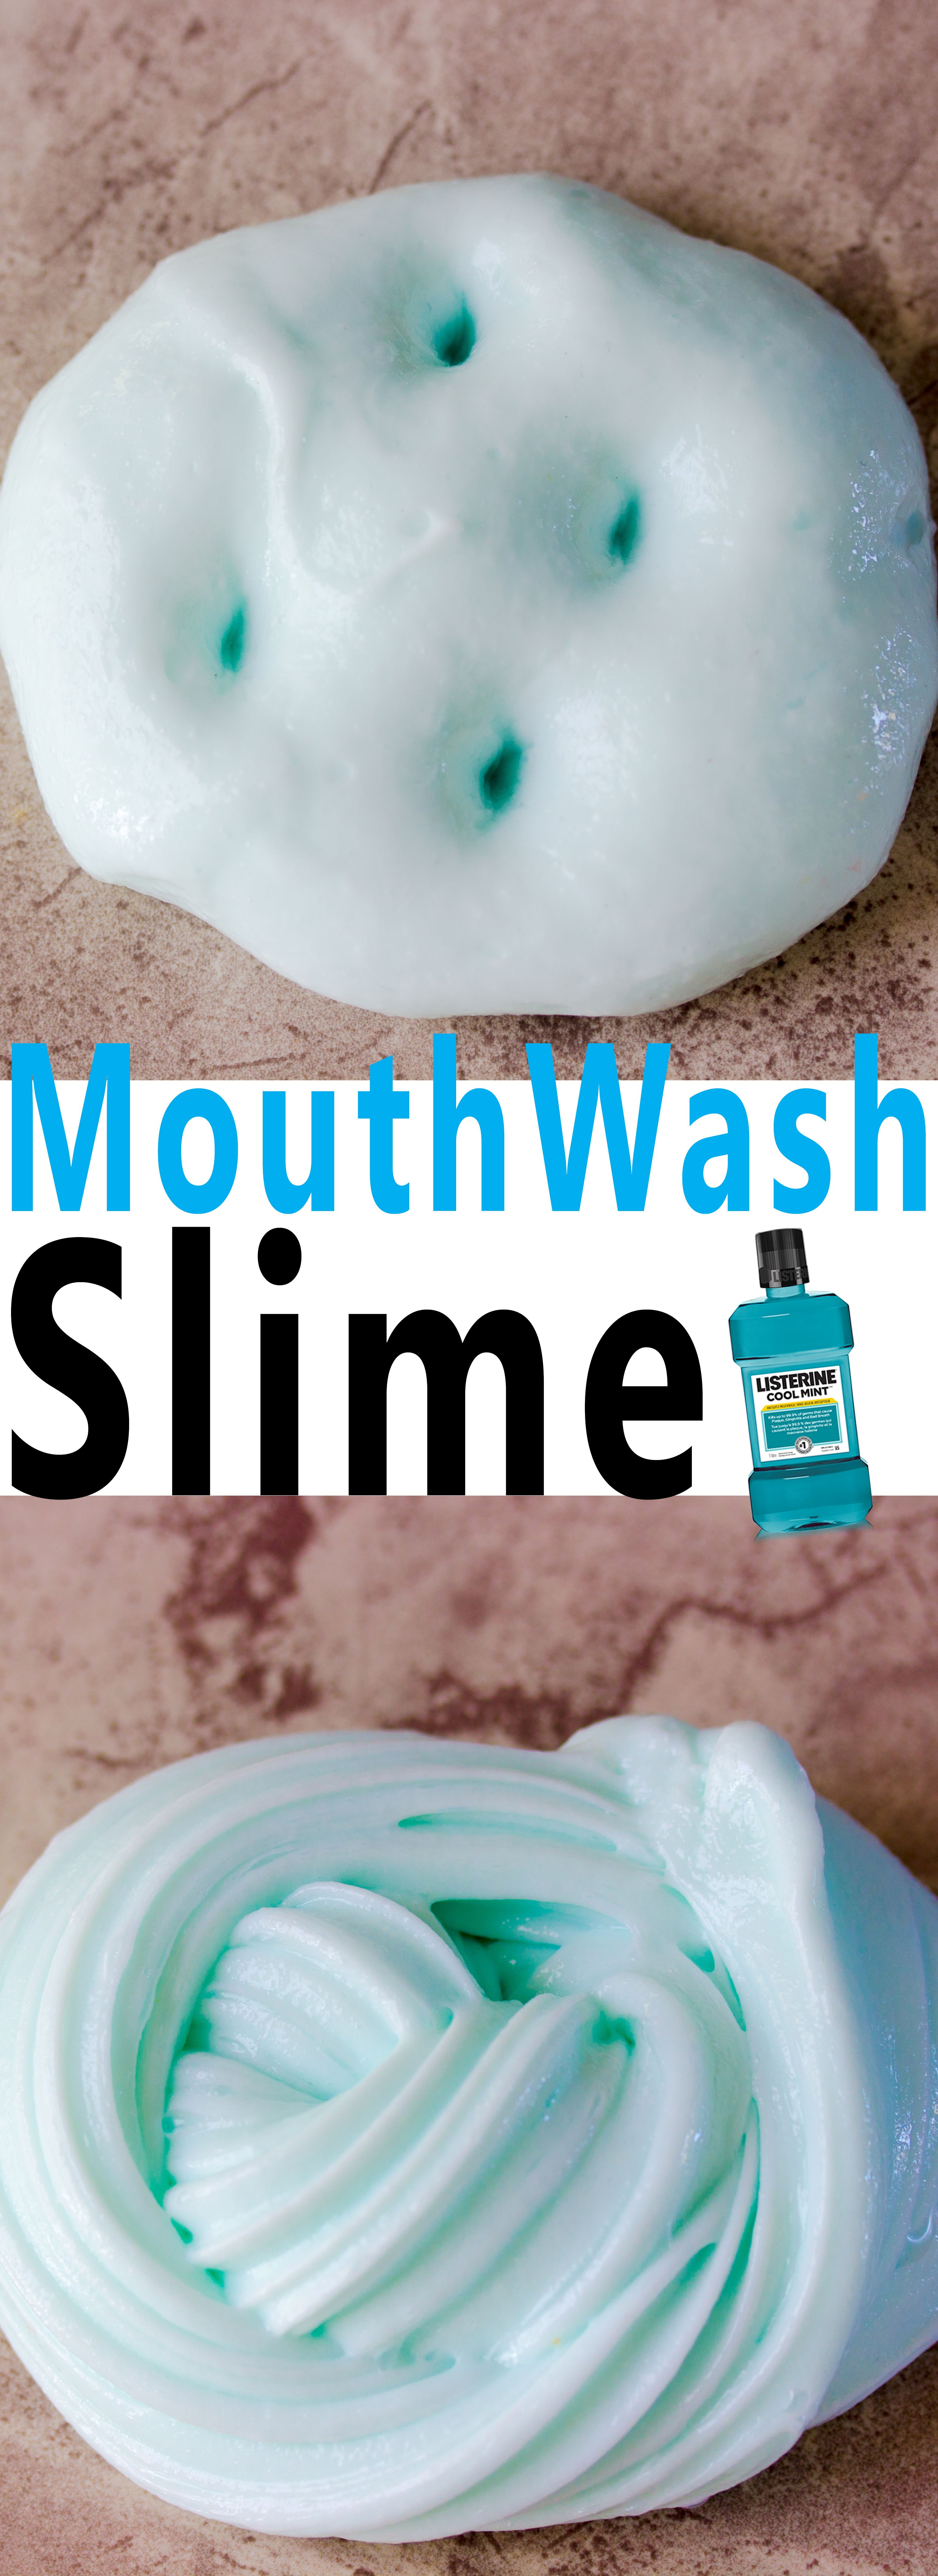 Simple mouthwash slime diy is simple to make and only requires a few simple mouthwash slime diy is simple to make and only requires a few simple ingredients smells just like mint and is super jiggly ccuart Images